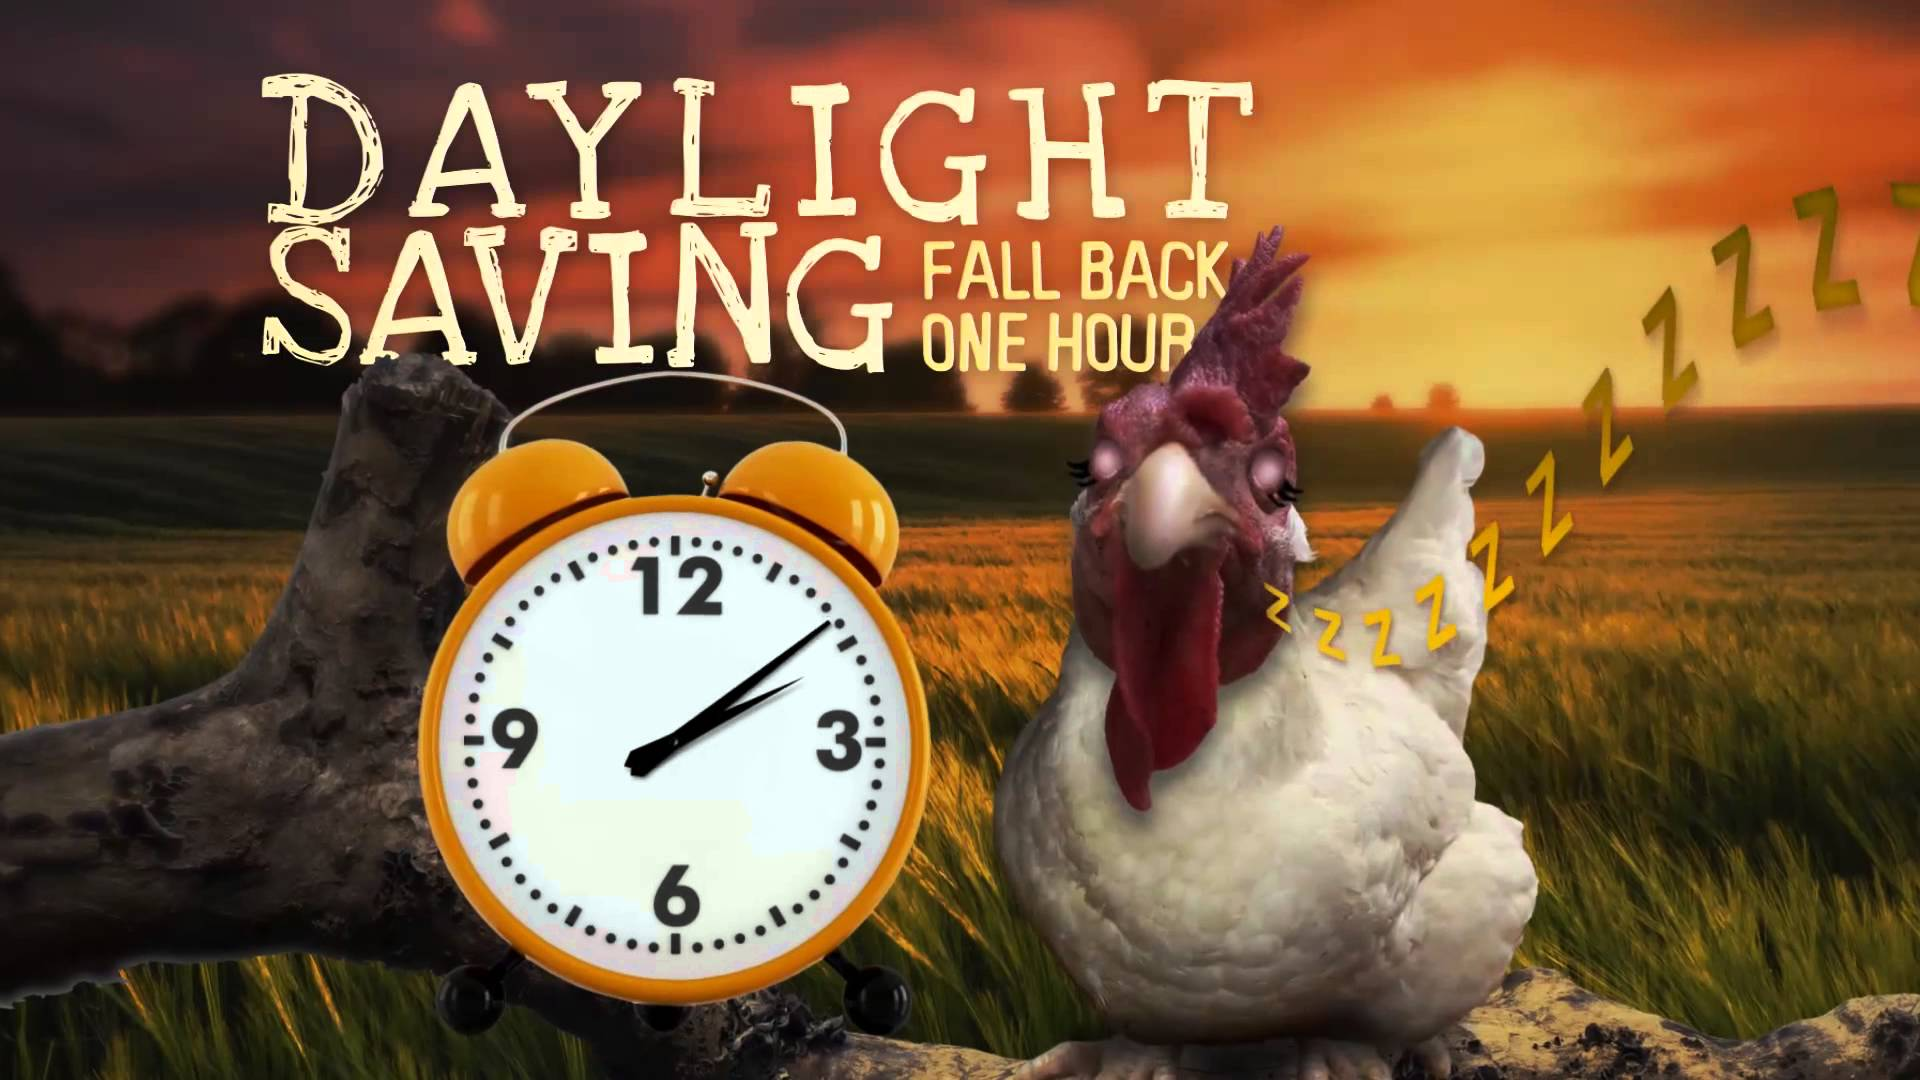 Daylight Saving Time End Will Add An Extra Hour To Your ...